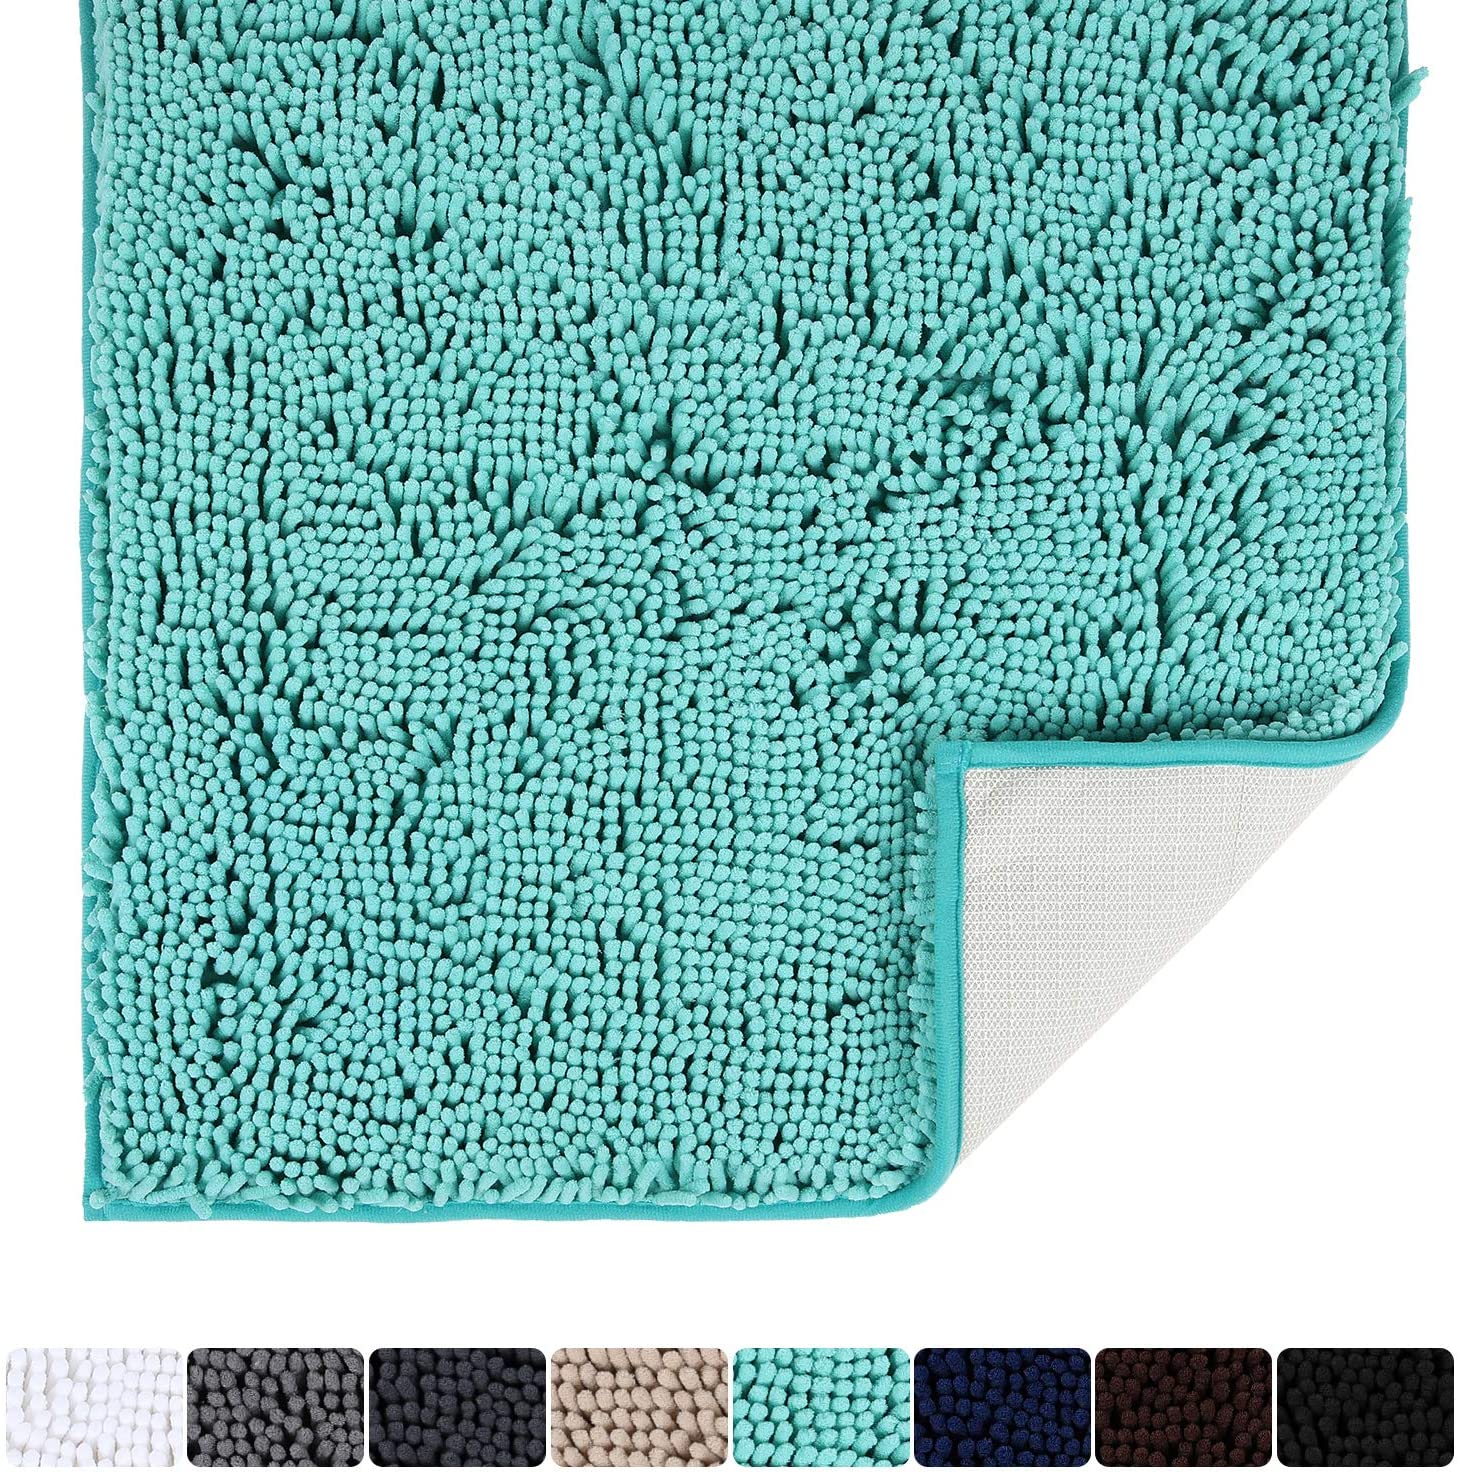 Colorxy Luxury Chenille Bathroom Rug - Solid Shaggy Washable Bath Mat Non Slip Bath Room Runner, Ultra Soft, Plush Bathmat for Bathroom Shower with Water Absorbent Memory Foam, 24''x47'', Turquoise